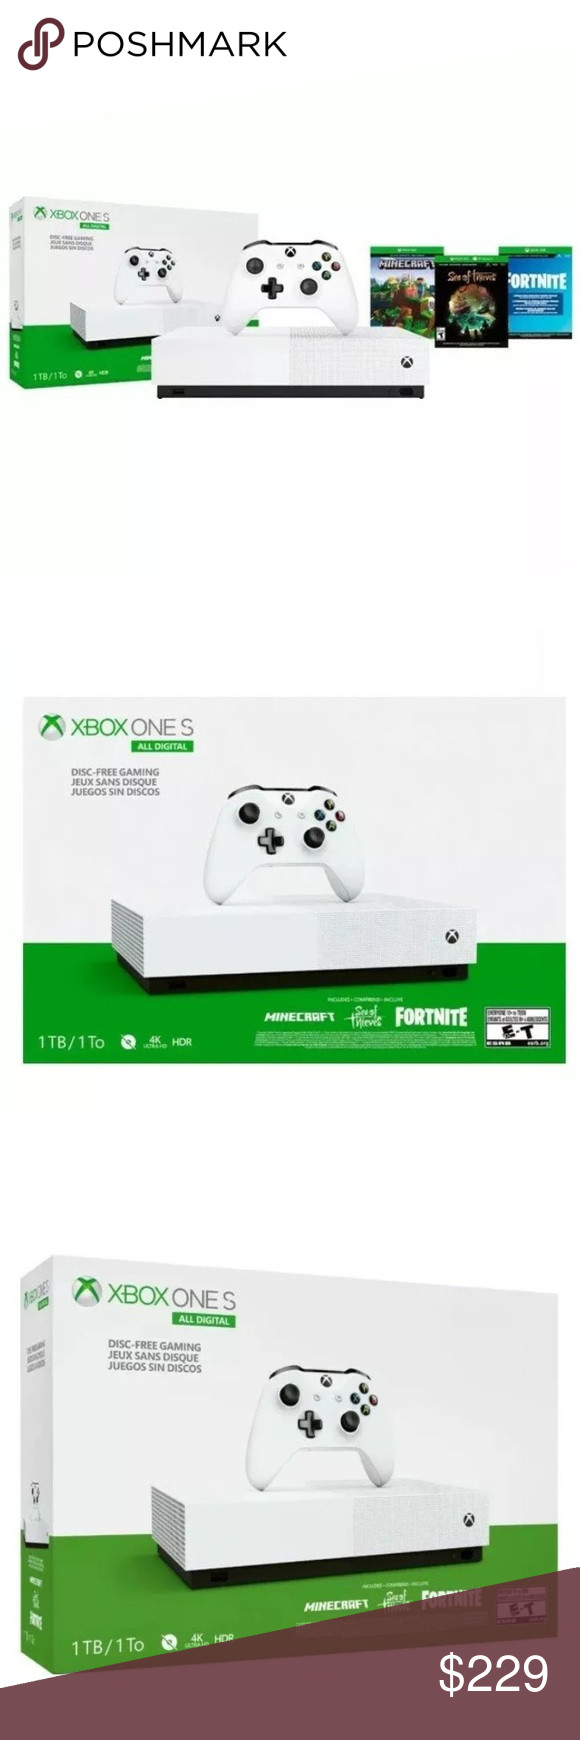 MICROSOFT XBOX ONE S 1TB DIGITAL EDITION BUNDLE MICROSOFT